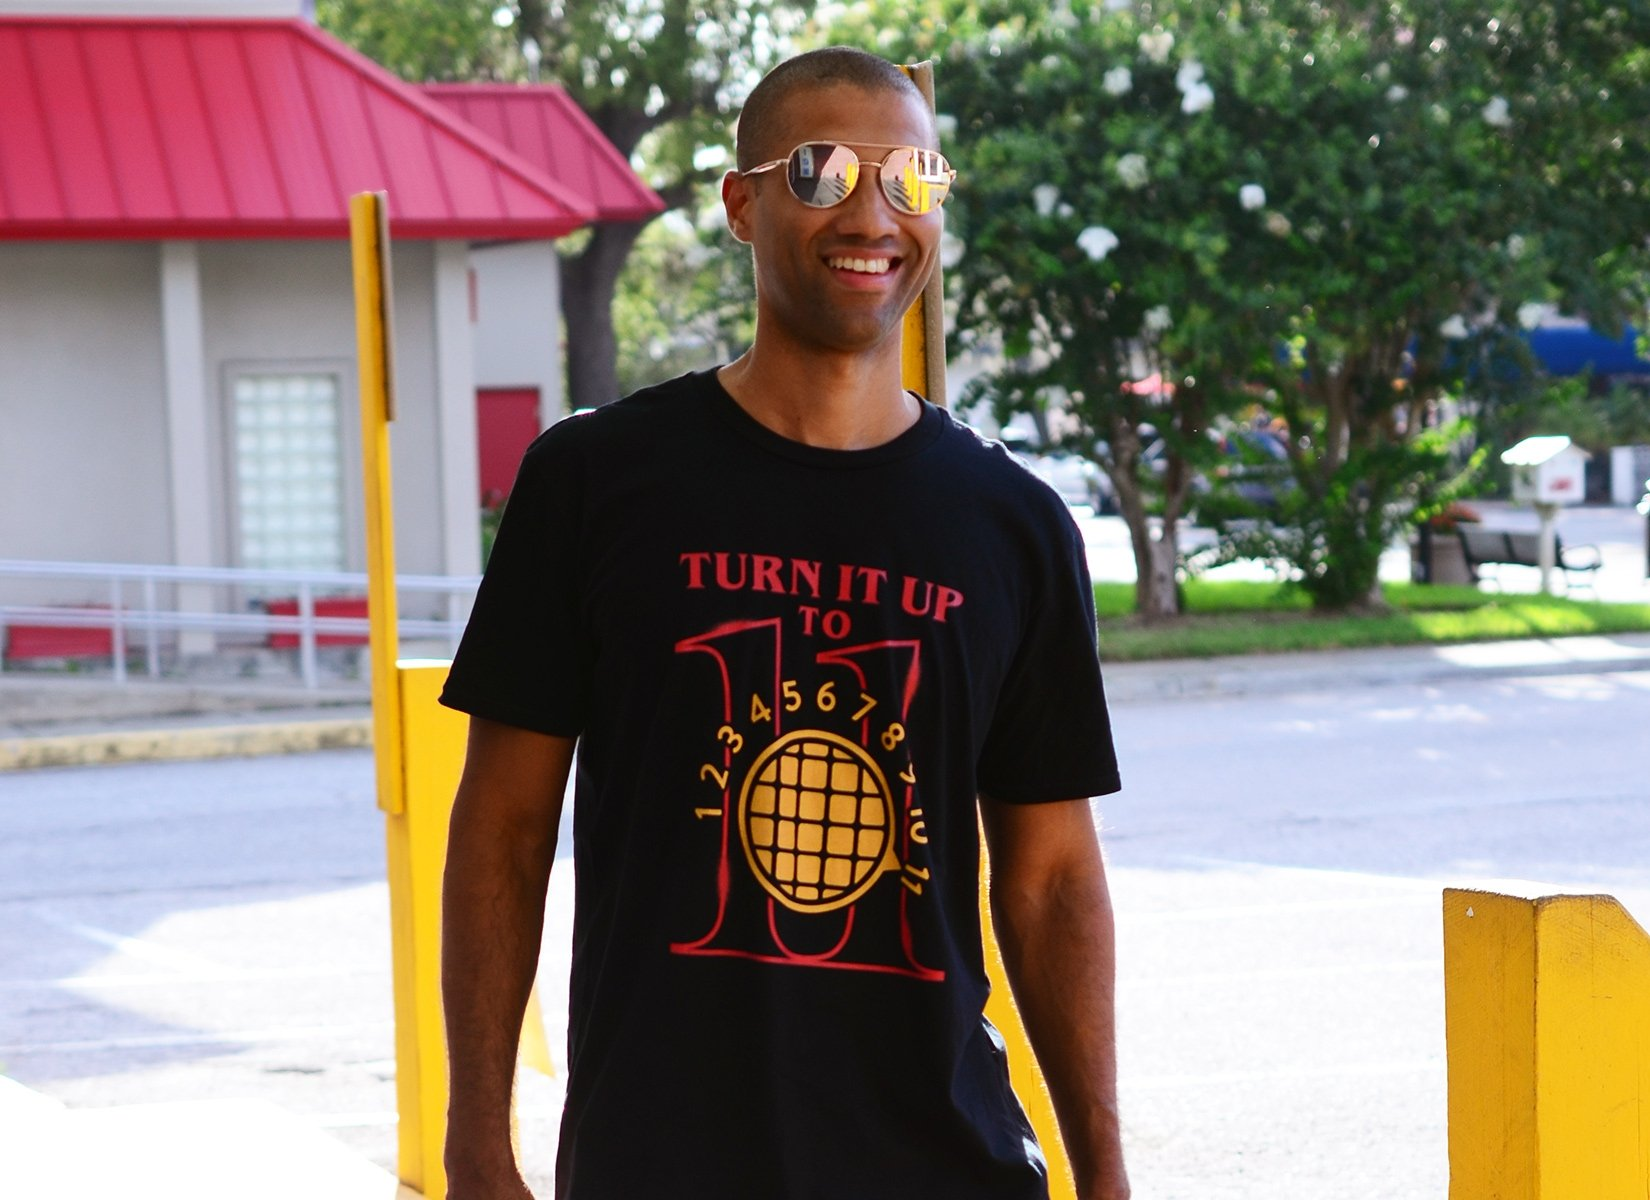 Turn It Up To 11 on Mens T-Shirt